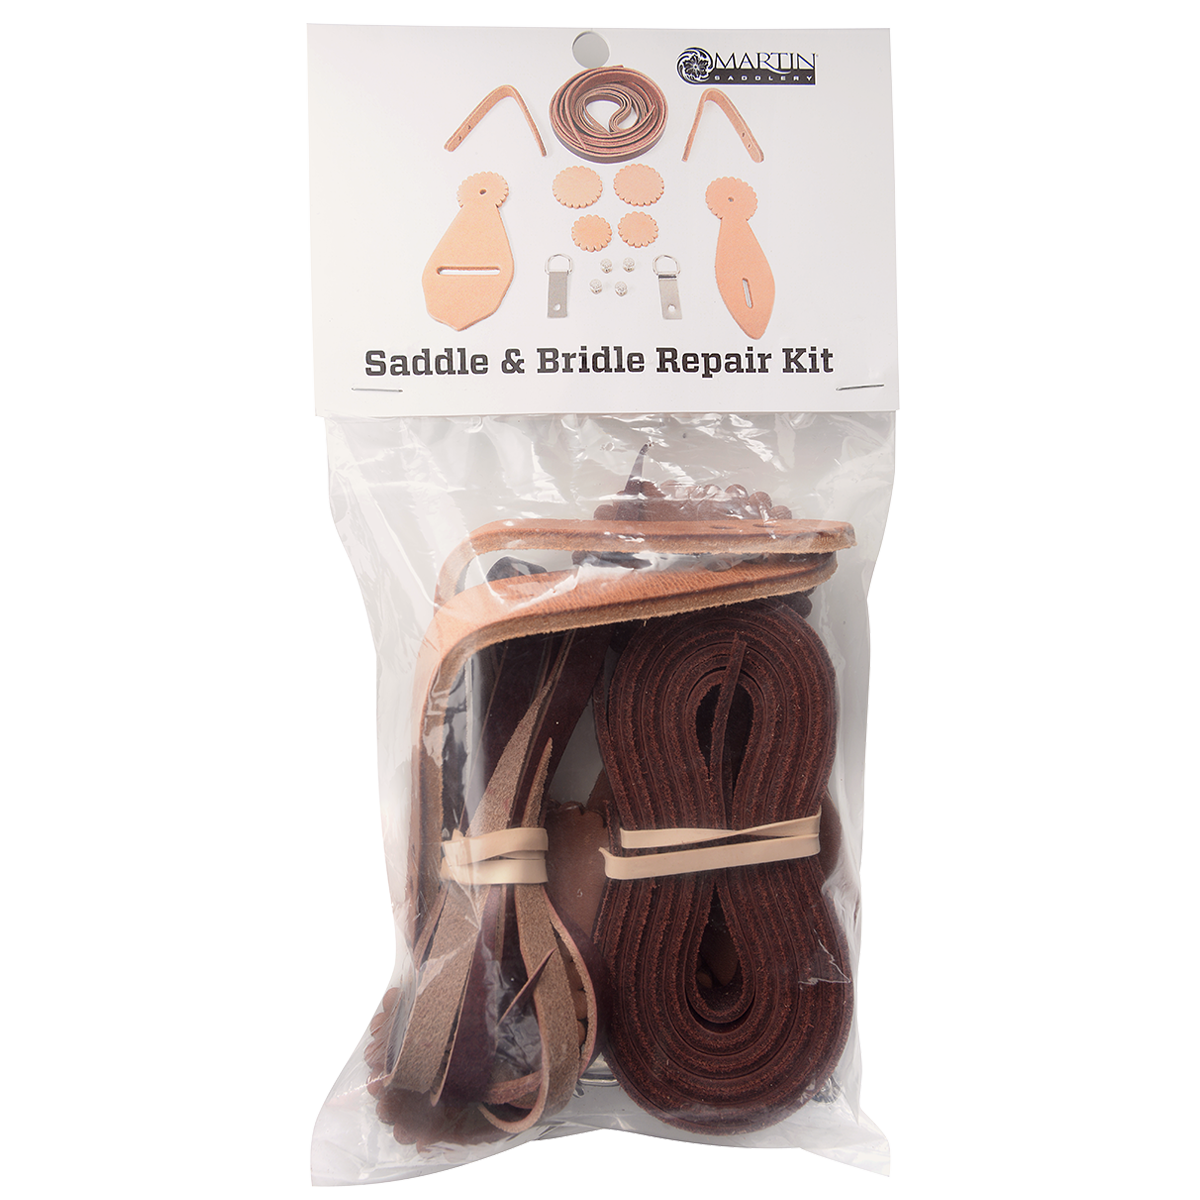 Martin Saddlery Saddle & Bridle Repair Kit